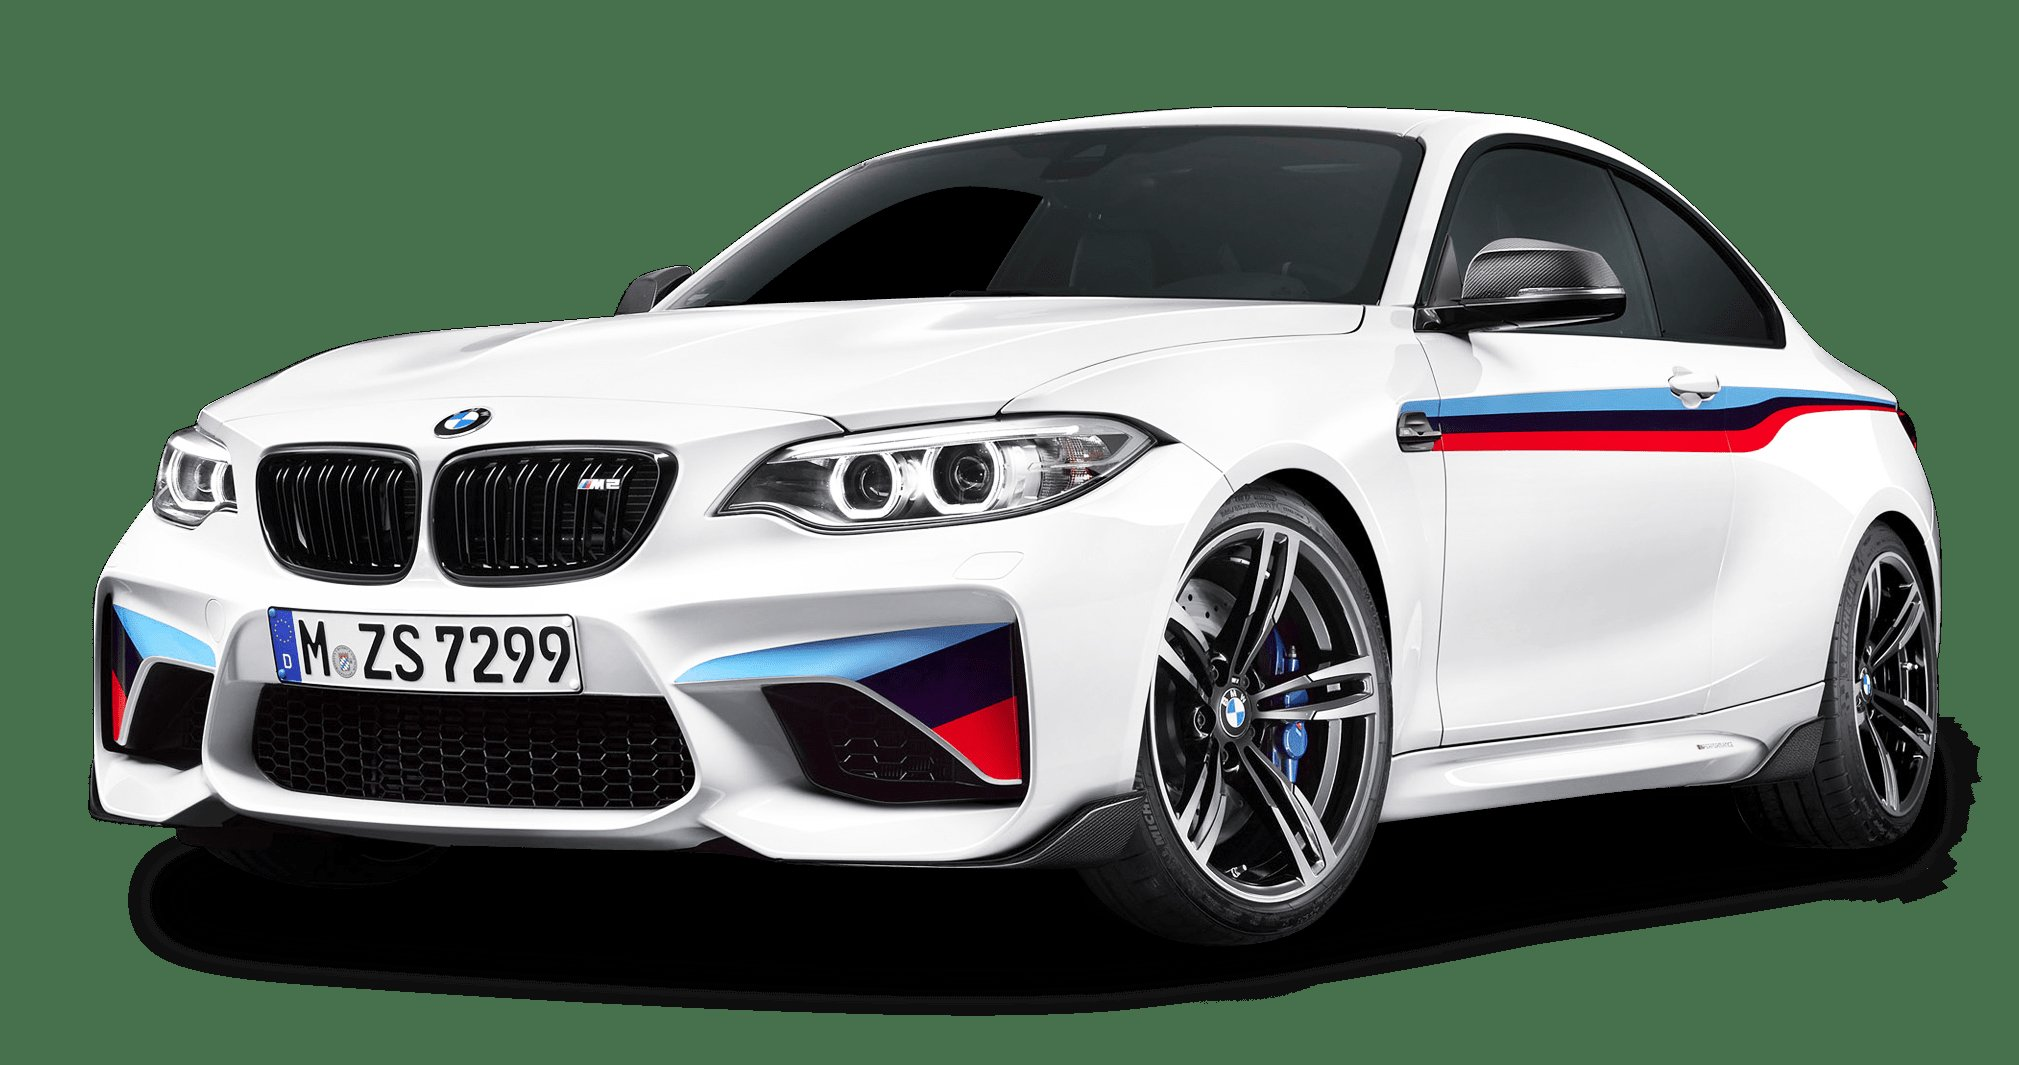 Latest Bmw M2 Coupe White Car Png Image Pngpix Free Download